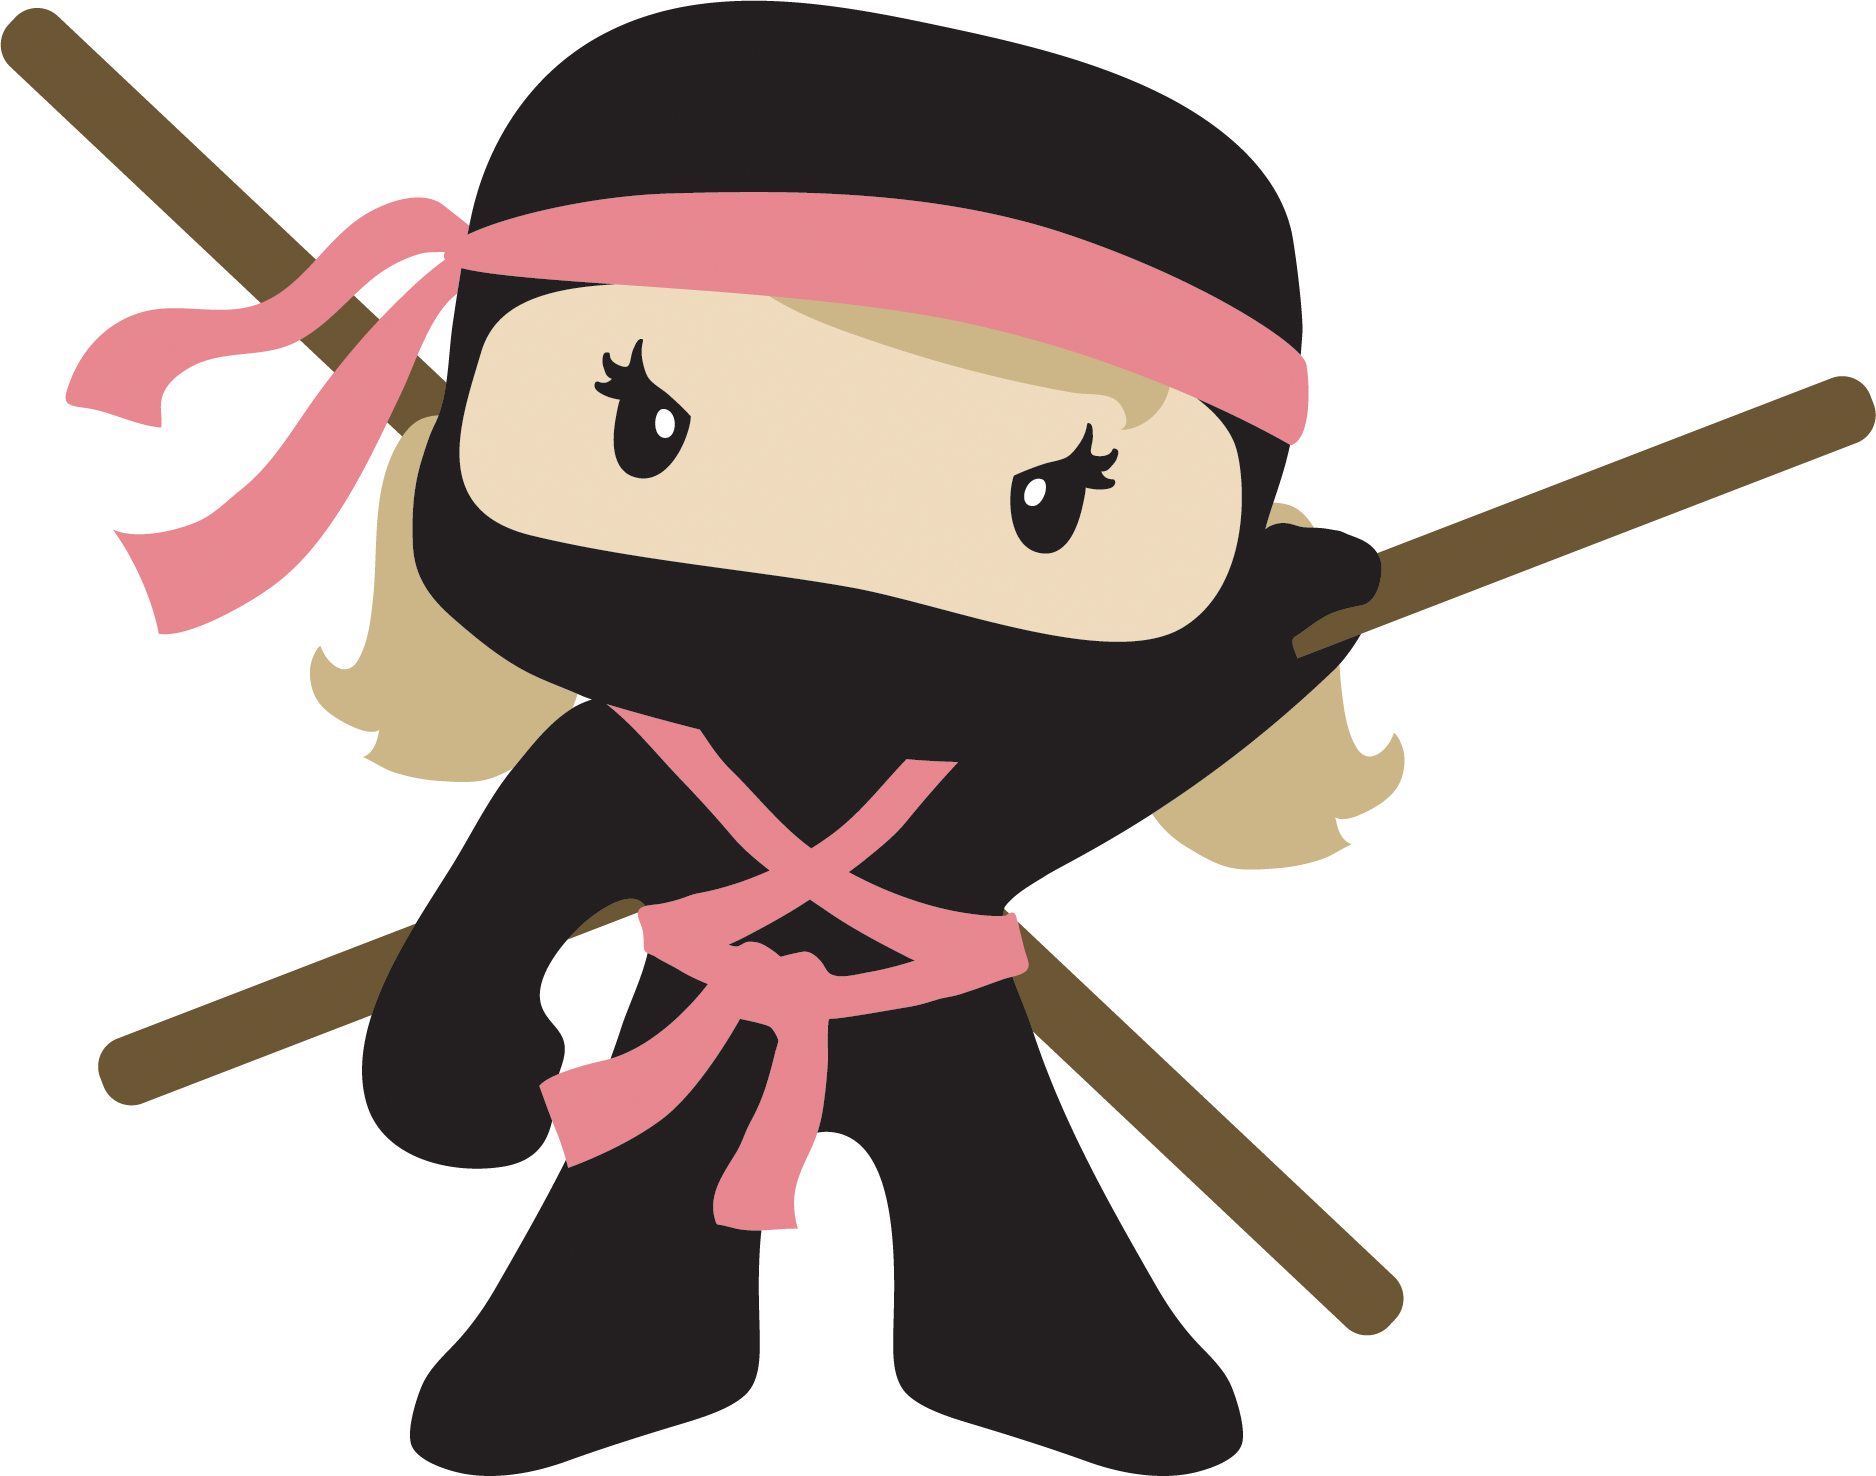 congratulations you are now a level 2 function ninja what is your math ninja super power